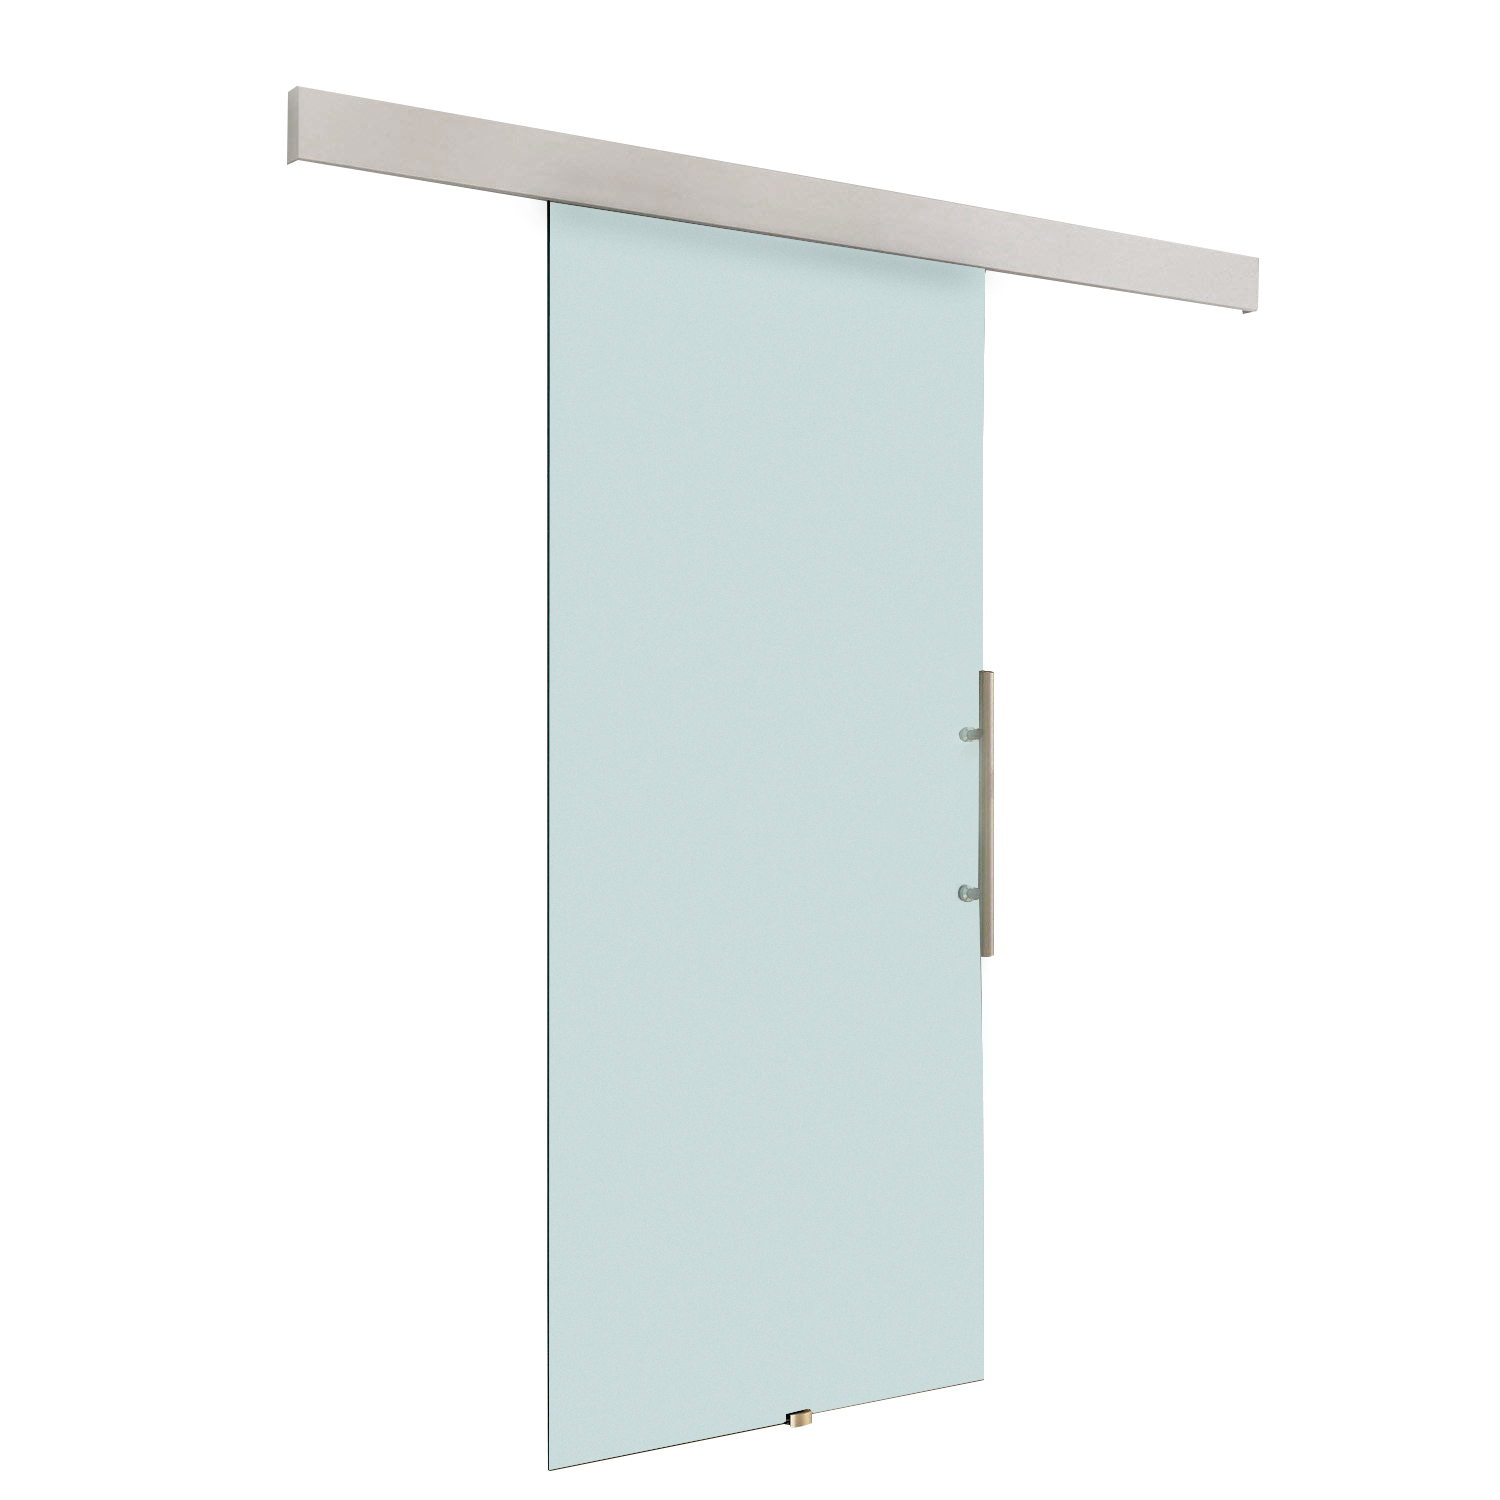 HOMCOM sliding door interior frosted glass with tracks and handle for bathroom kitchen study 205x77.5x0.8cm image